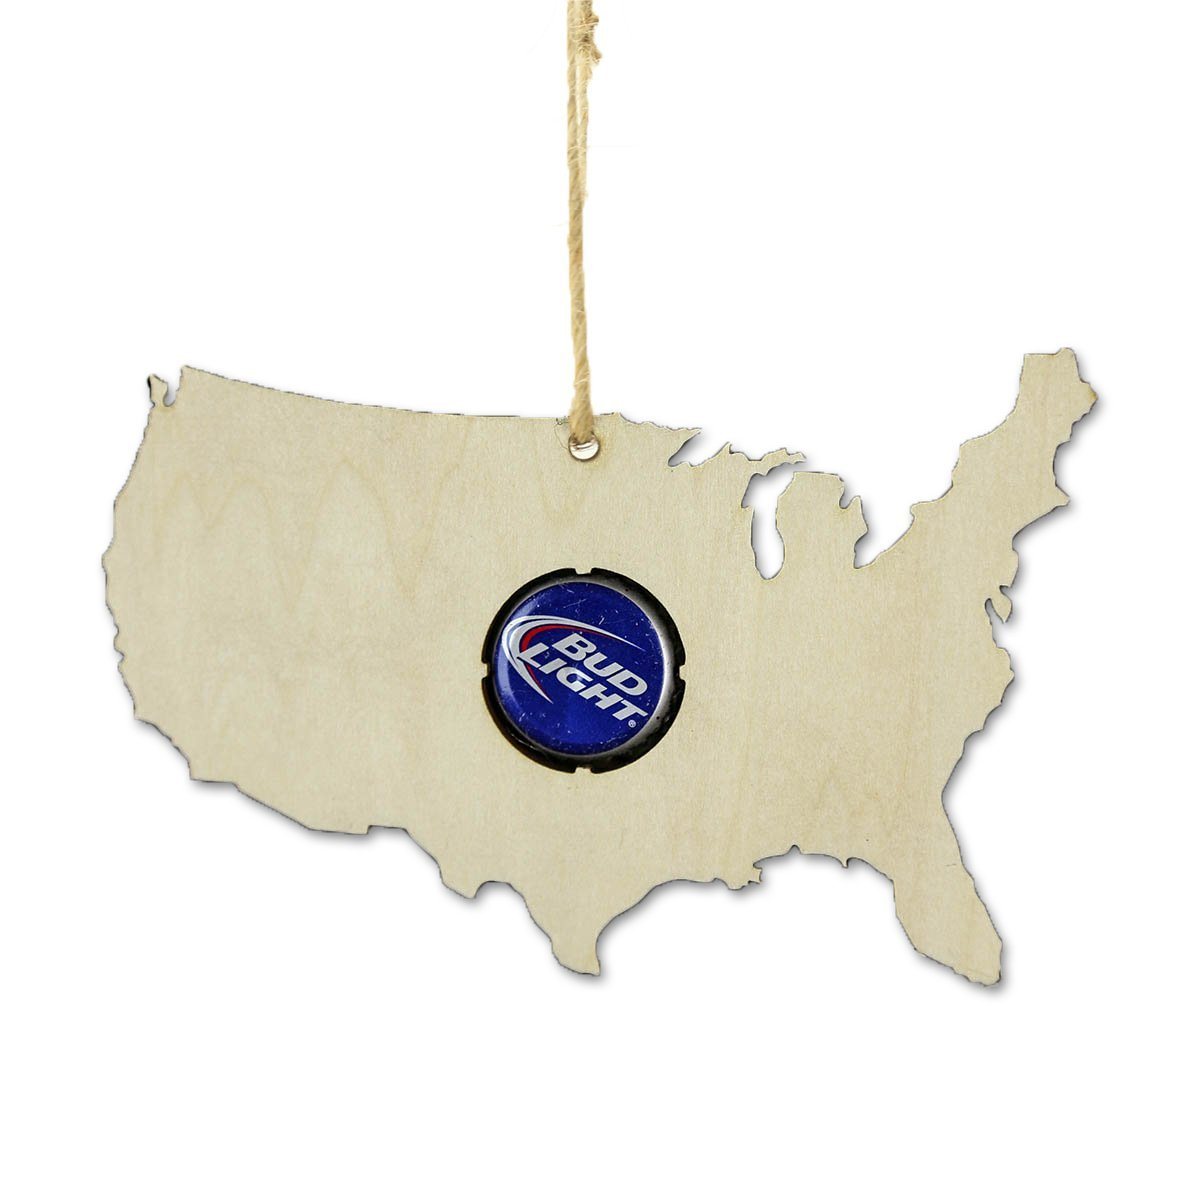 USA Beer Cap Map Ornaments Usa Map Beer Logos on usa dairy map, usa beach map, usa poultry map, usa games map, usa basketball map, usa wineries map, soda usa map, usa love map, usa water map, usa map art, funny us state map, usa map states and capital puzzle, usa fishing map, usa fish map, usa europe map, usa fun map, american funny world map, usa whisky map, usa history map, usa food map,